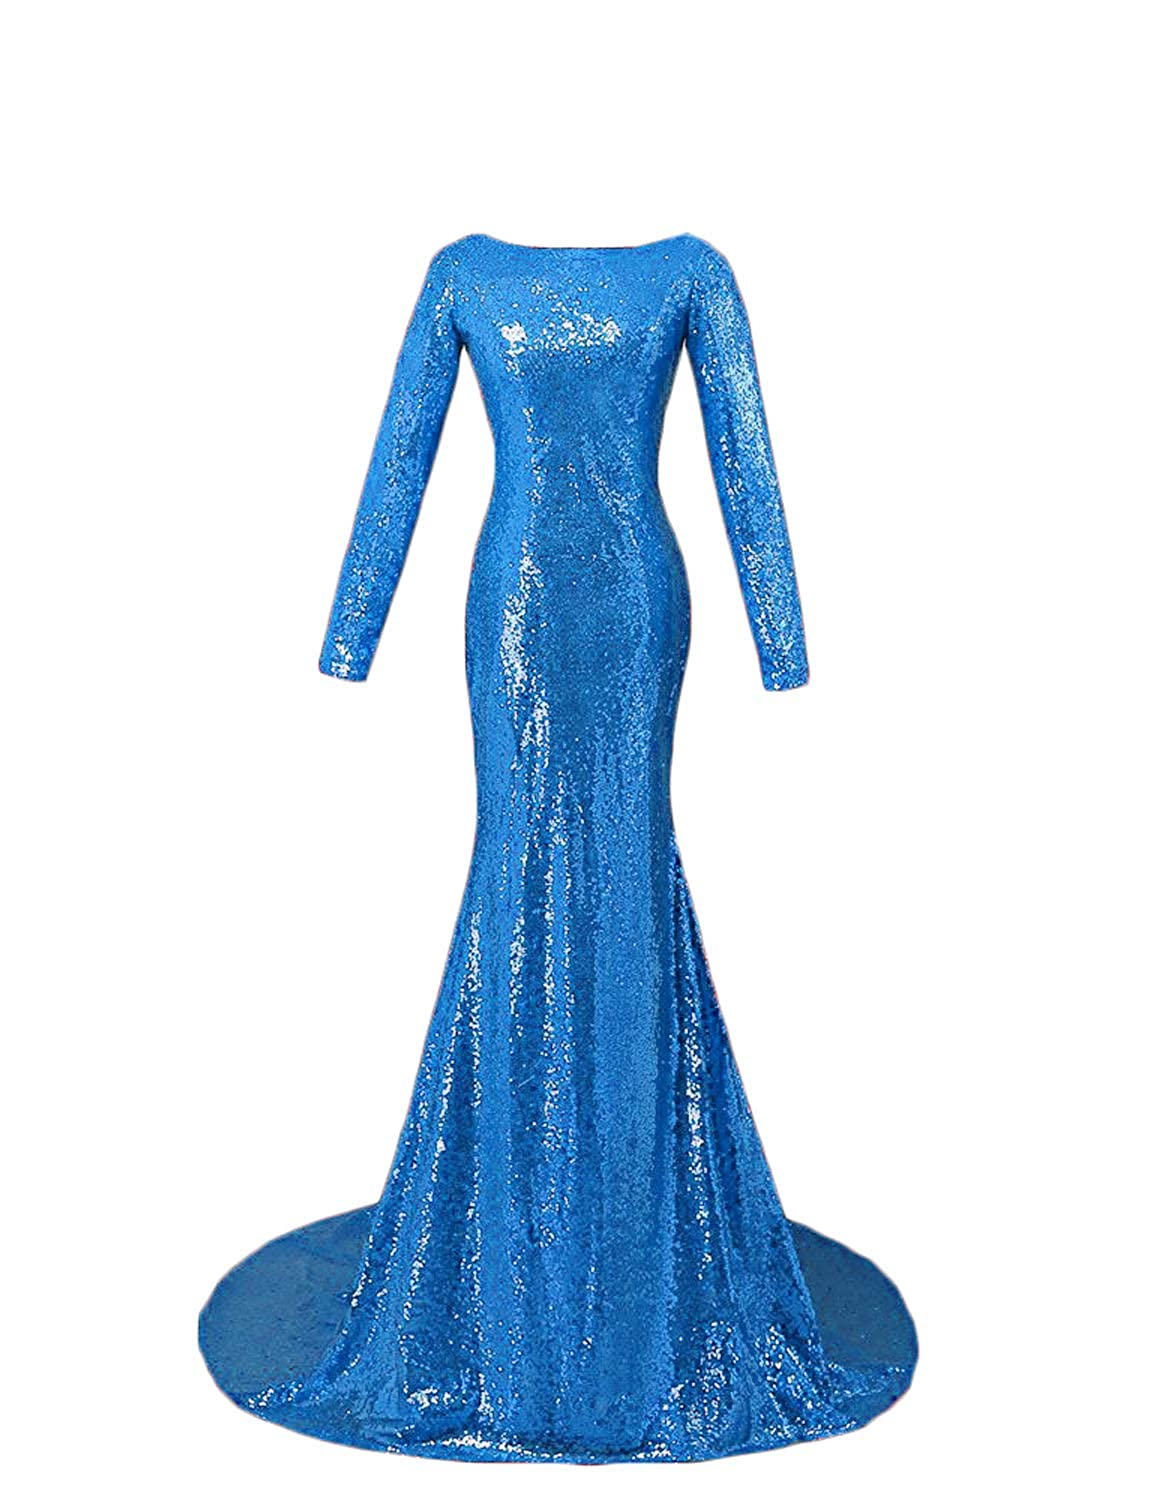 bluee CIRCLEWLD Backless Sequins Long Sleeves Formal Evening Dresses Train Elegant Prom Gala Gown E185